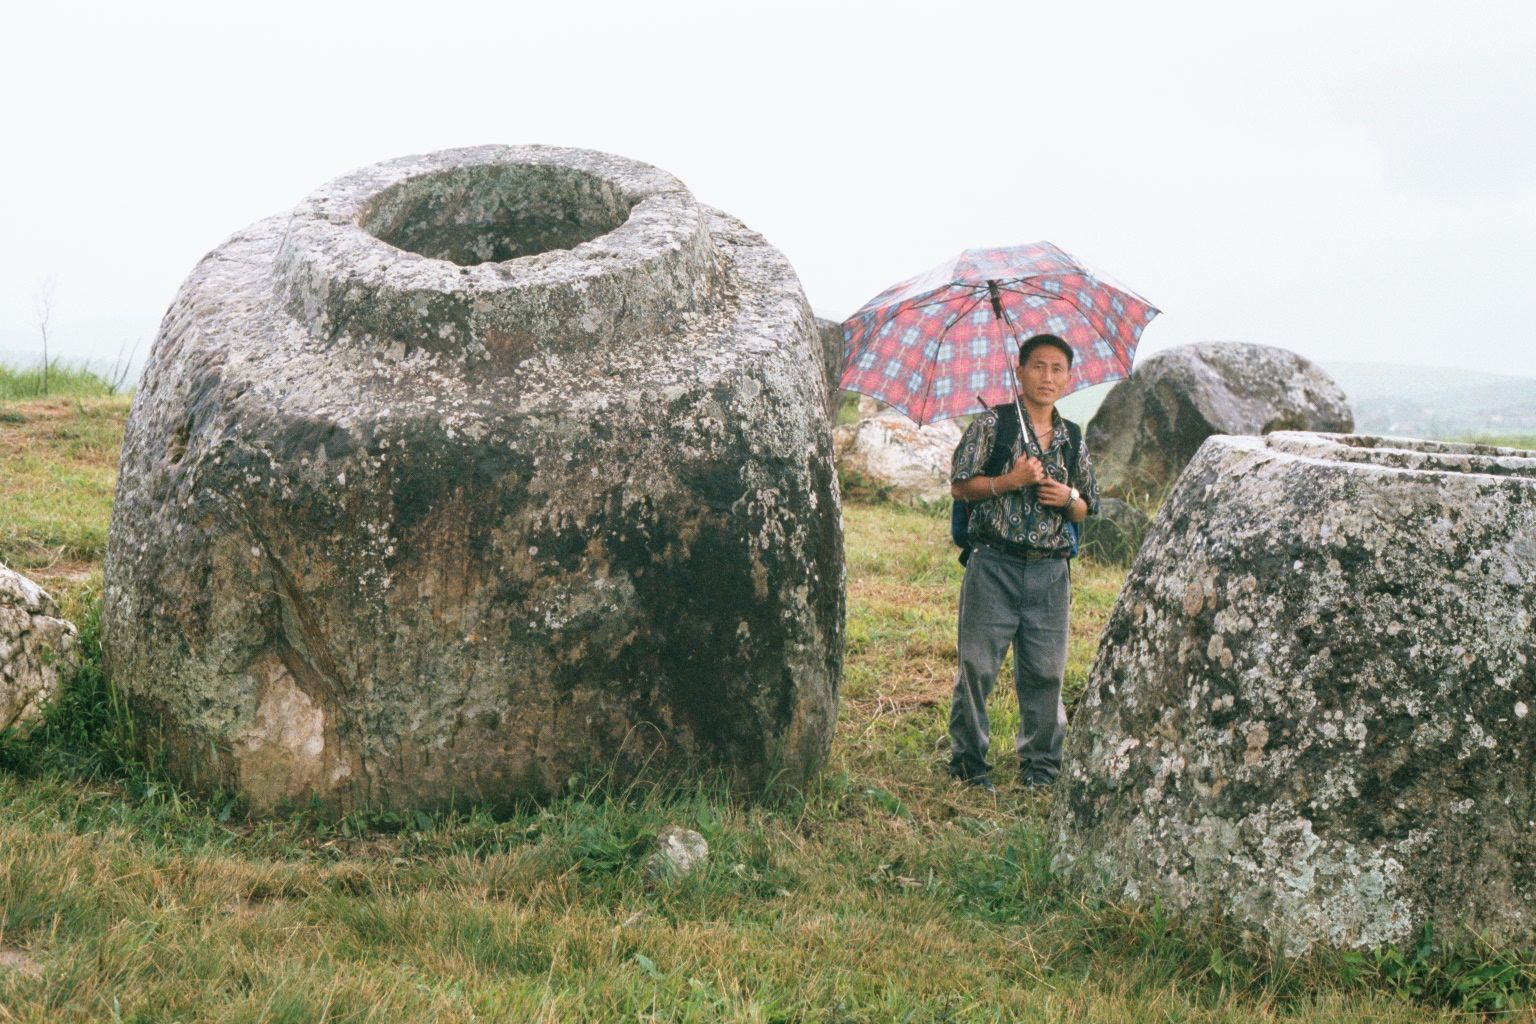 Project Sekong 2013: Unsolved mysteries at the Plain of Jars